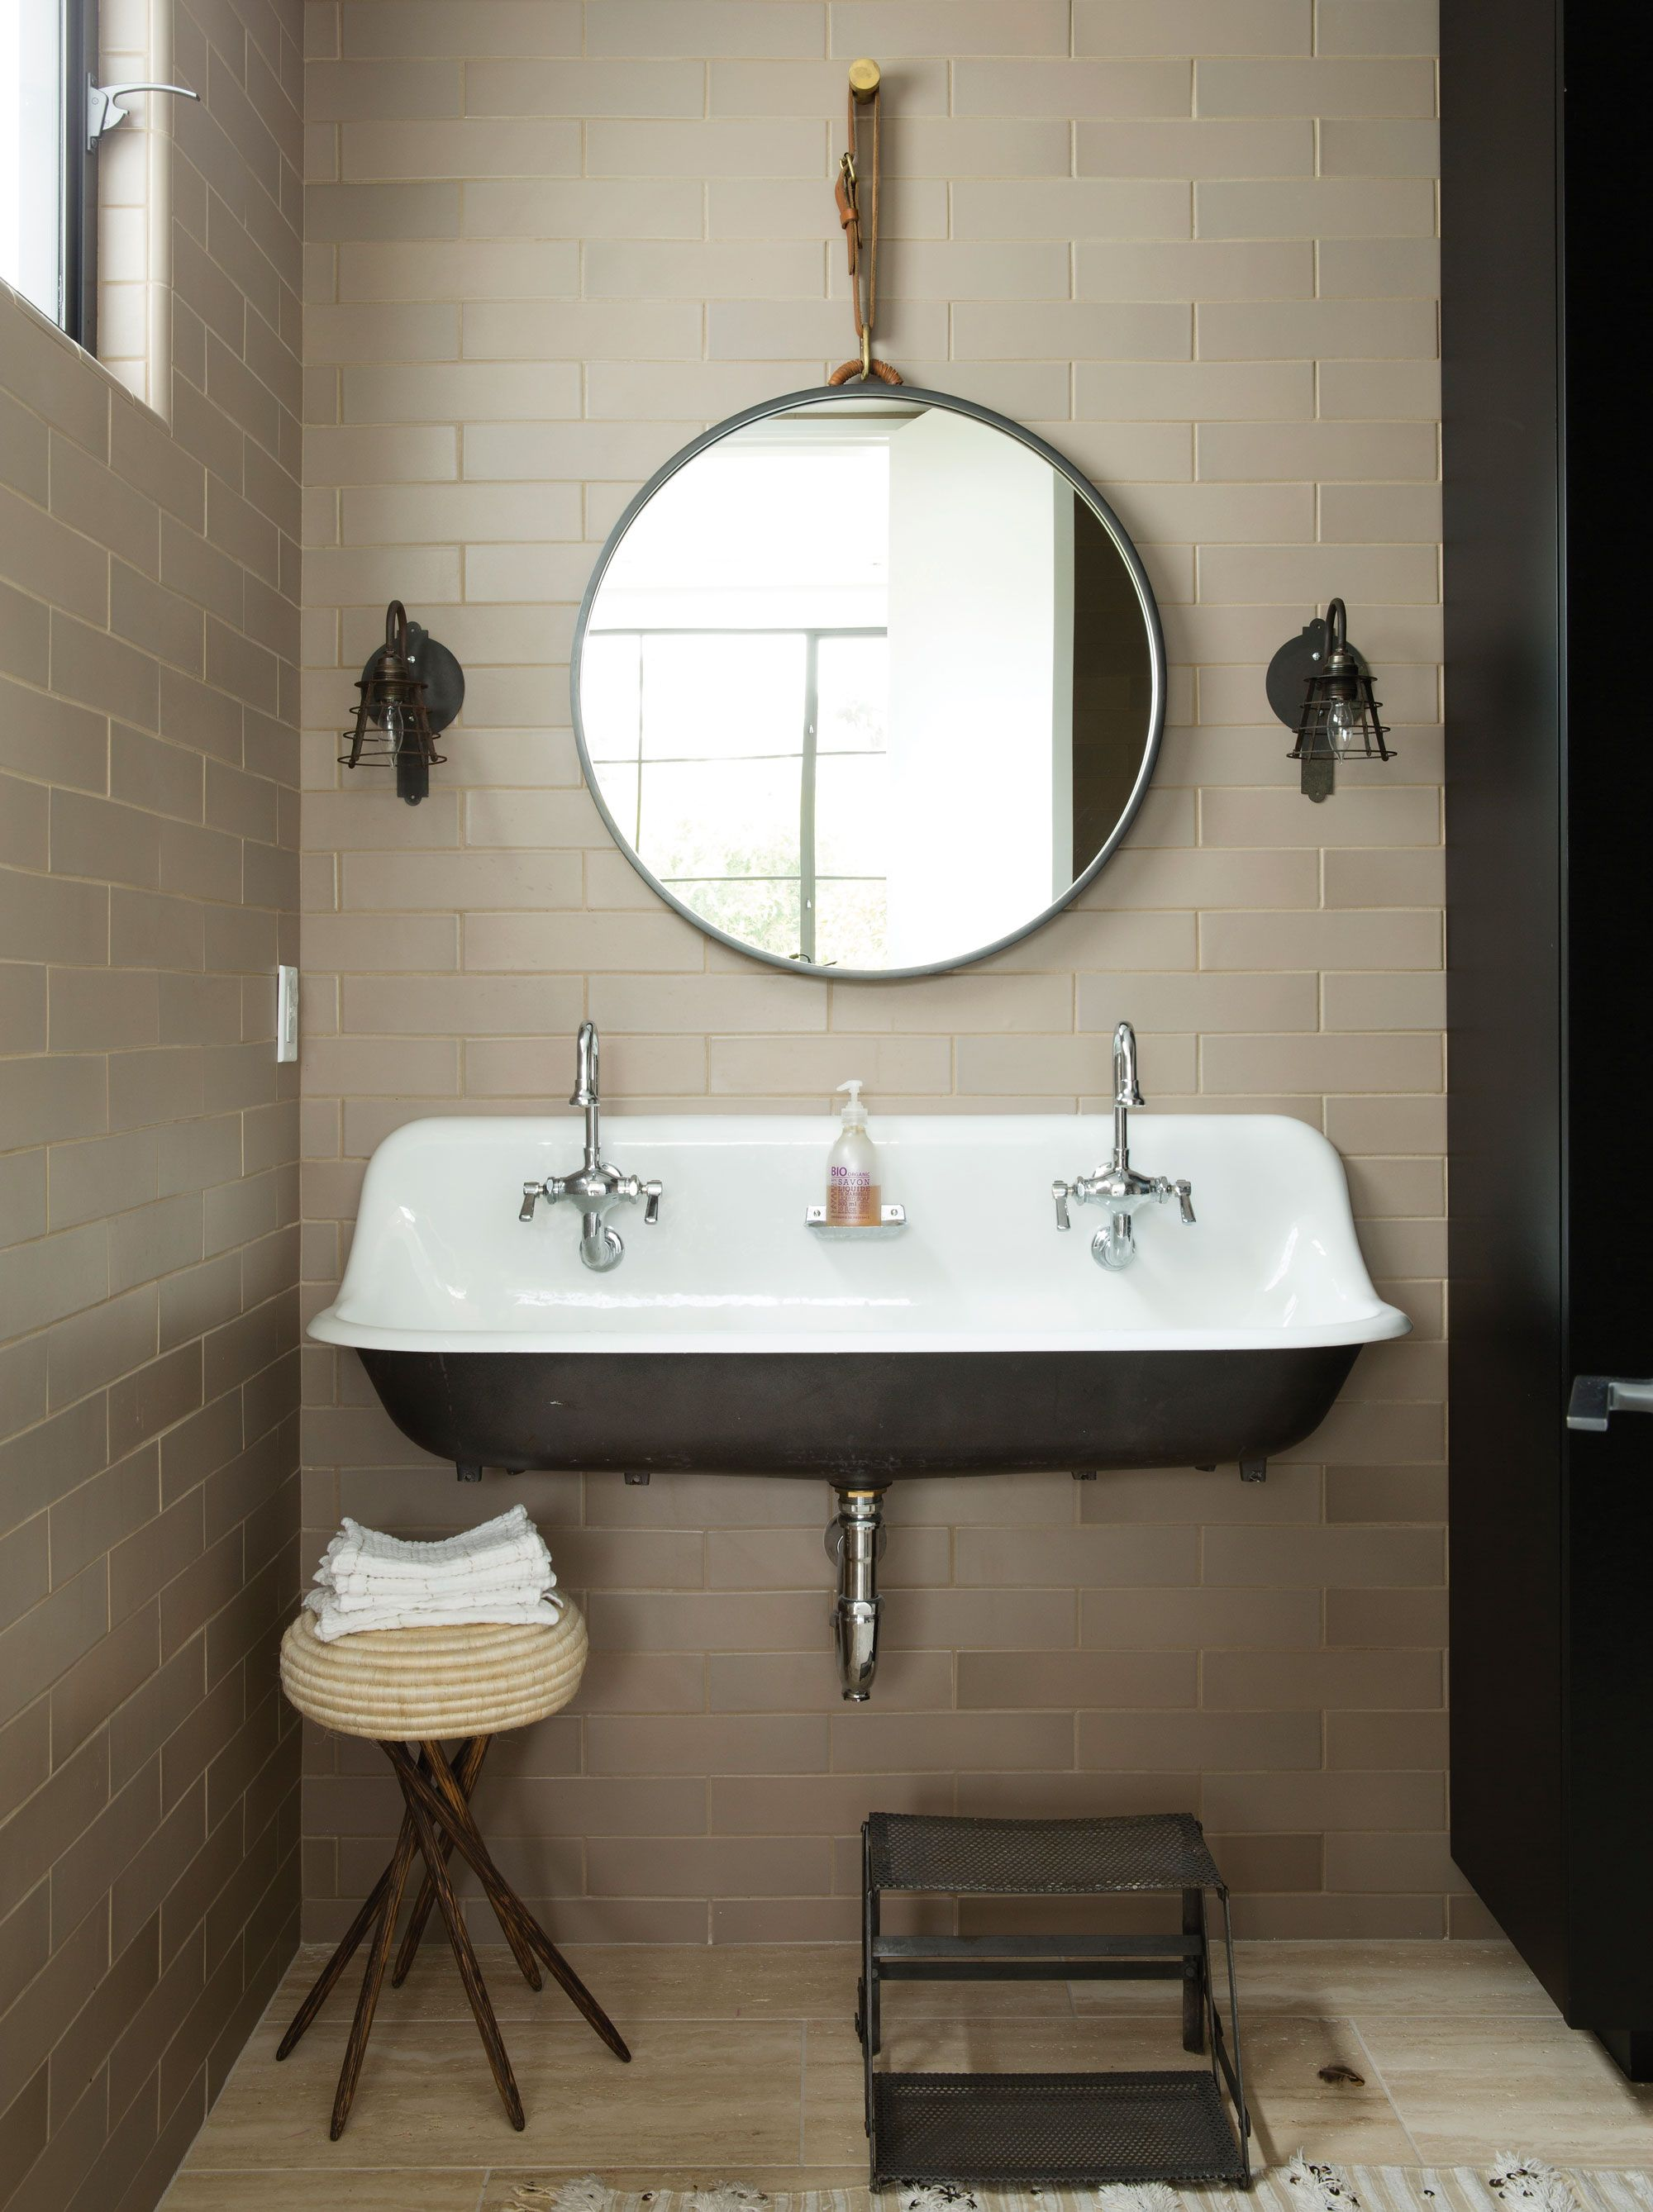 steel stainless sink basins elkay hler kohler and vessel vanities awesome bathroom sinks kitchen